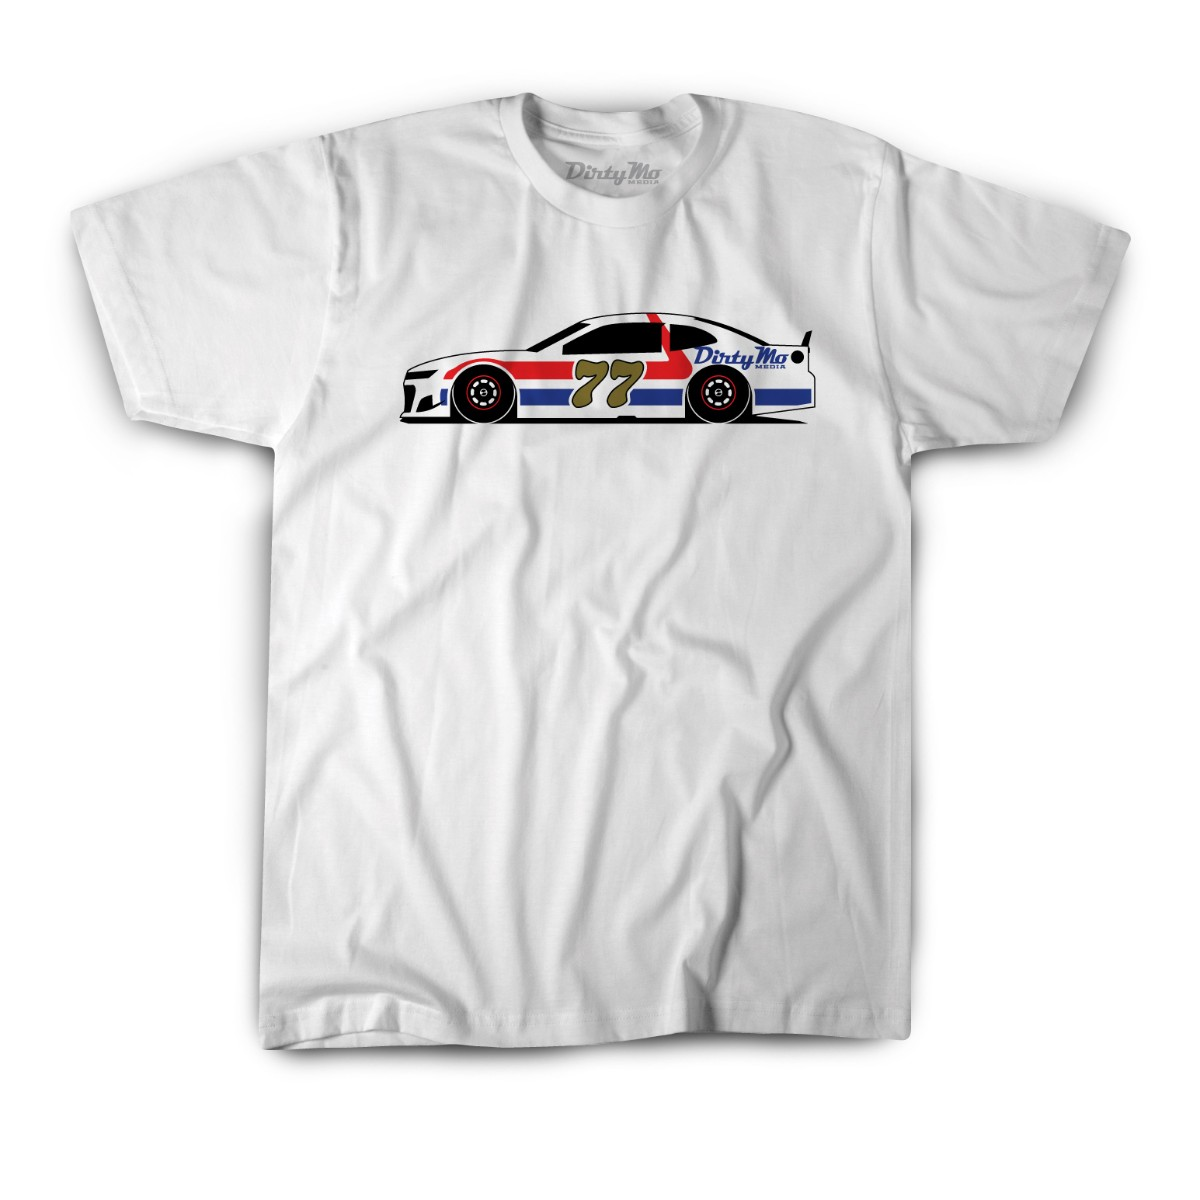 Dirty Mo Media #77 Throwback Tee